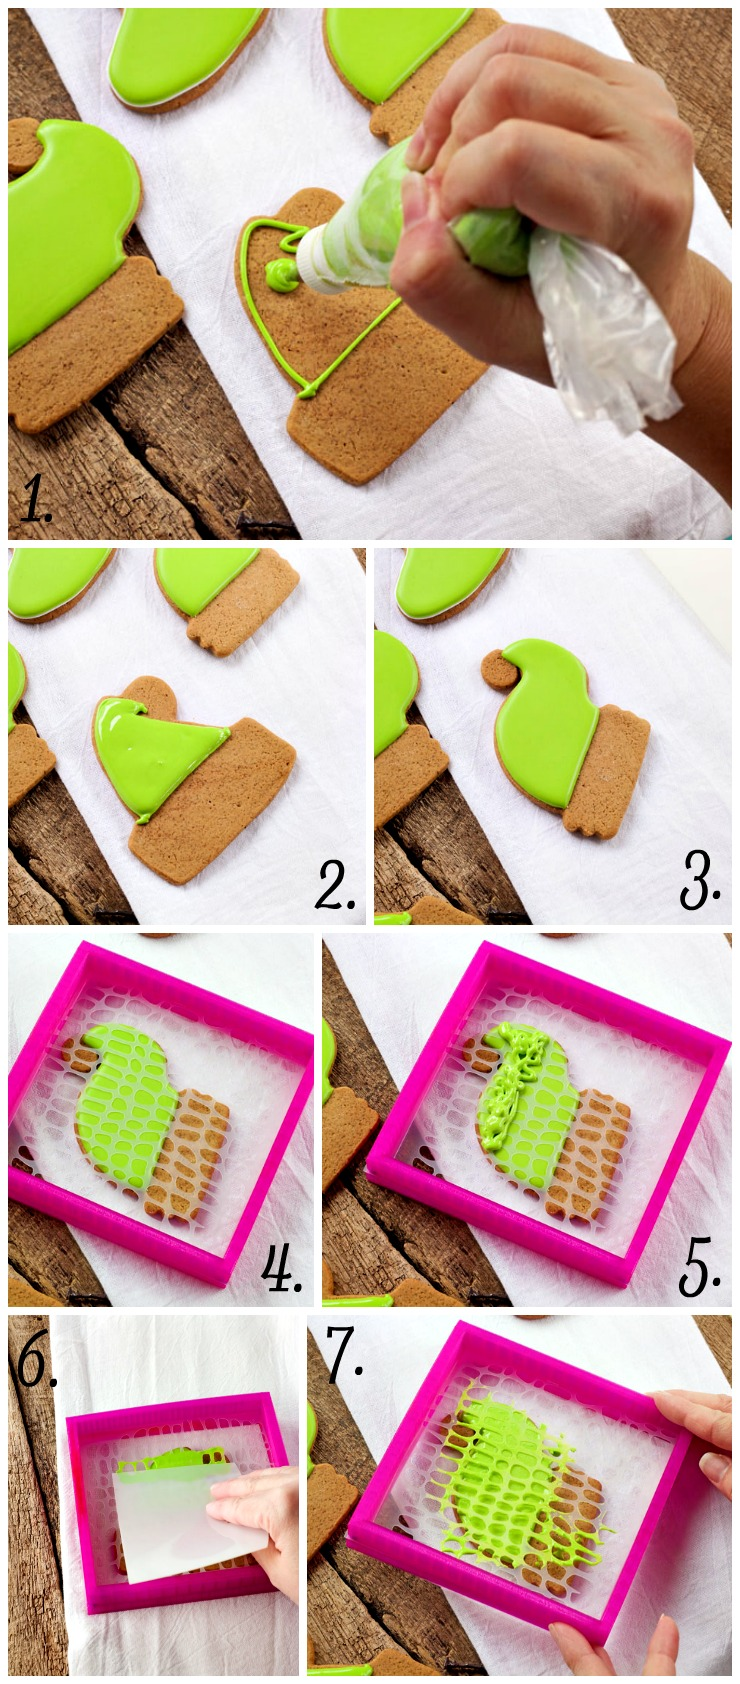 GIve the Kids a Paint Your Own Dinosaur Cookie this Christmas | The Bearfoot Baker